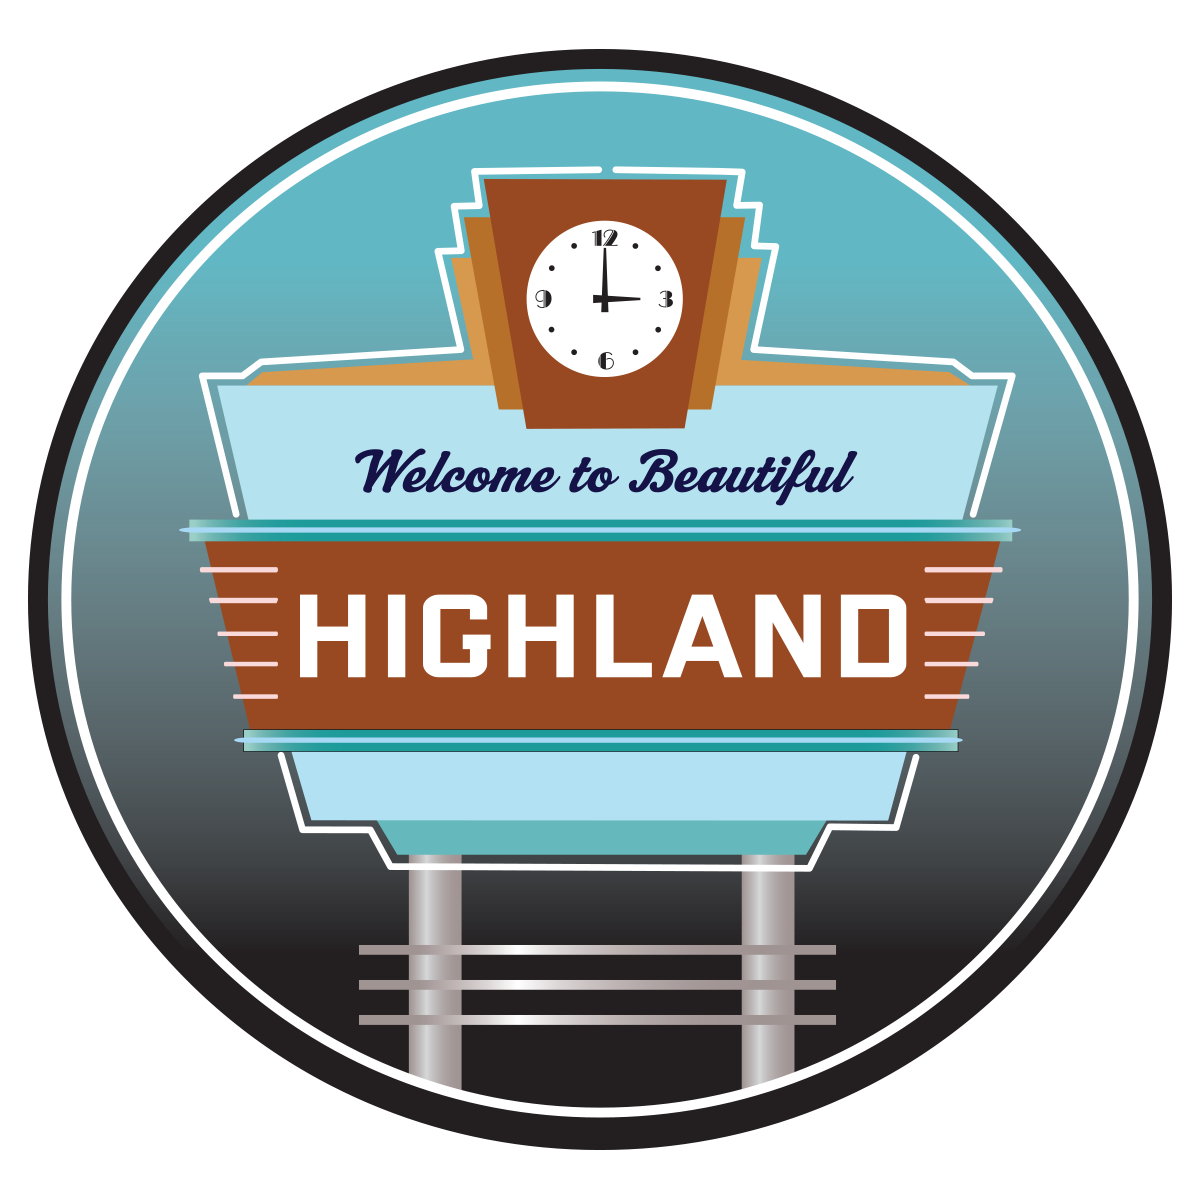 Town of Highland, Redevelopment Commission